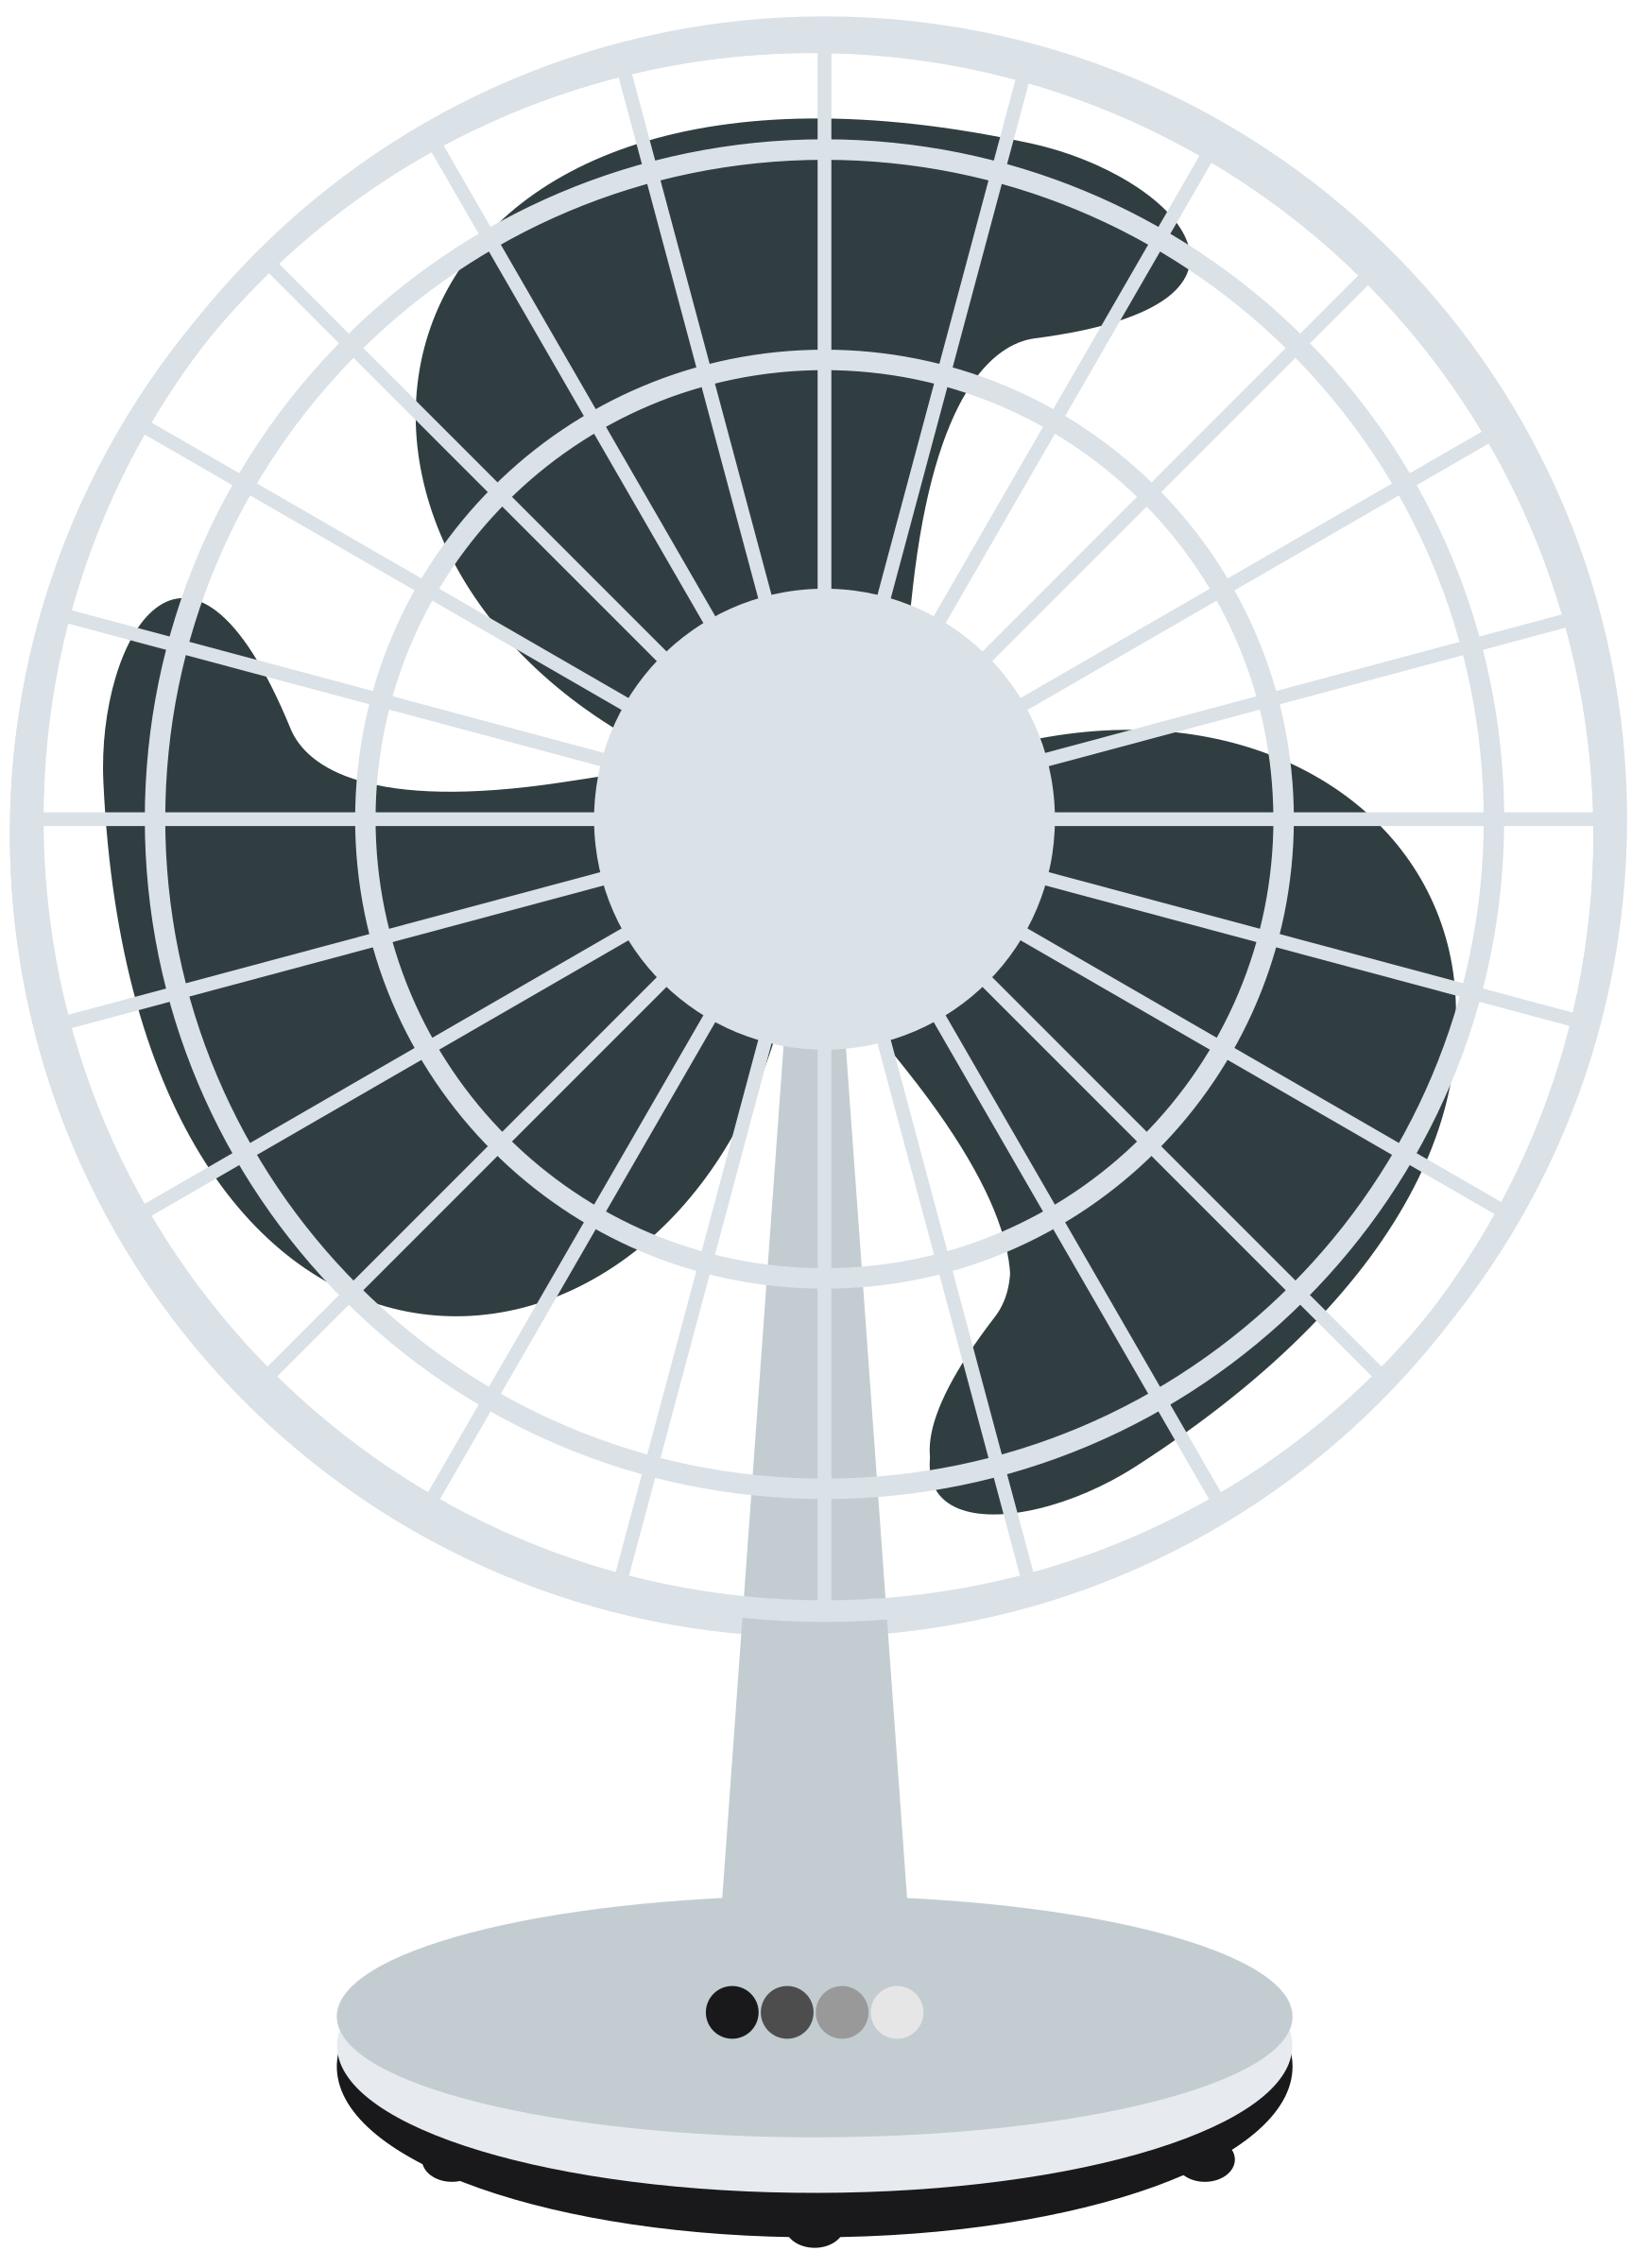 Png image purepng free. Clipart people fan